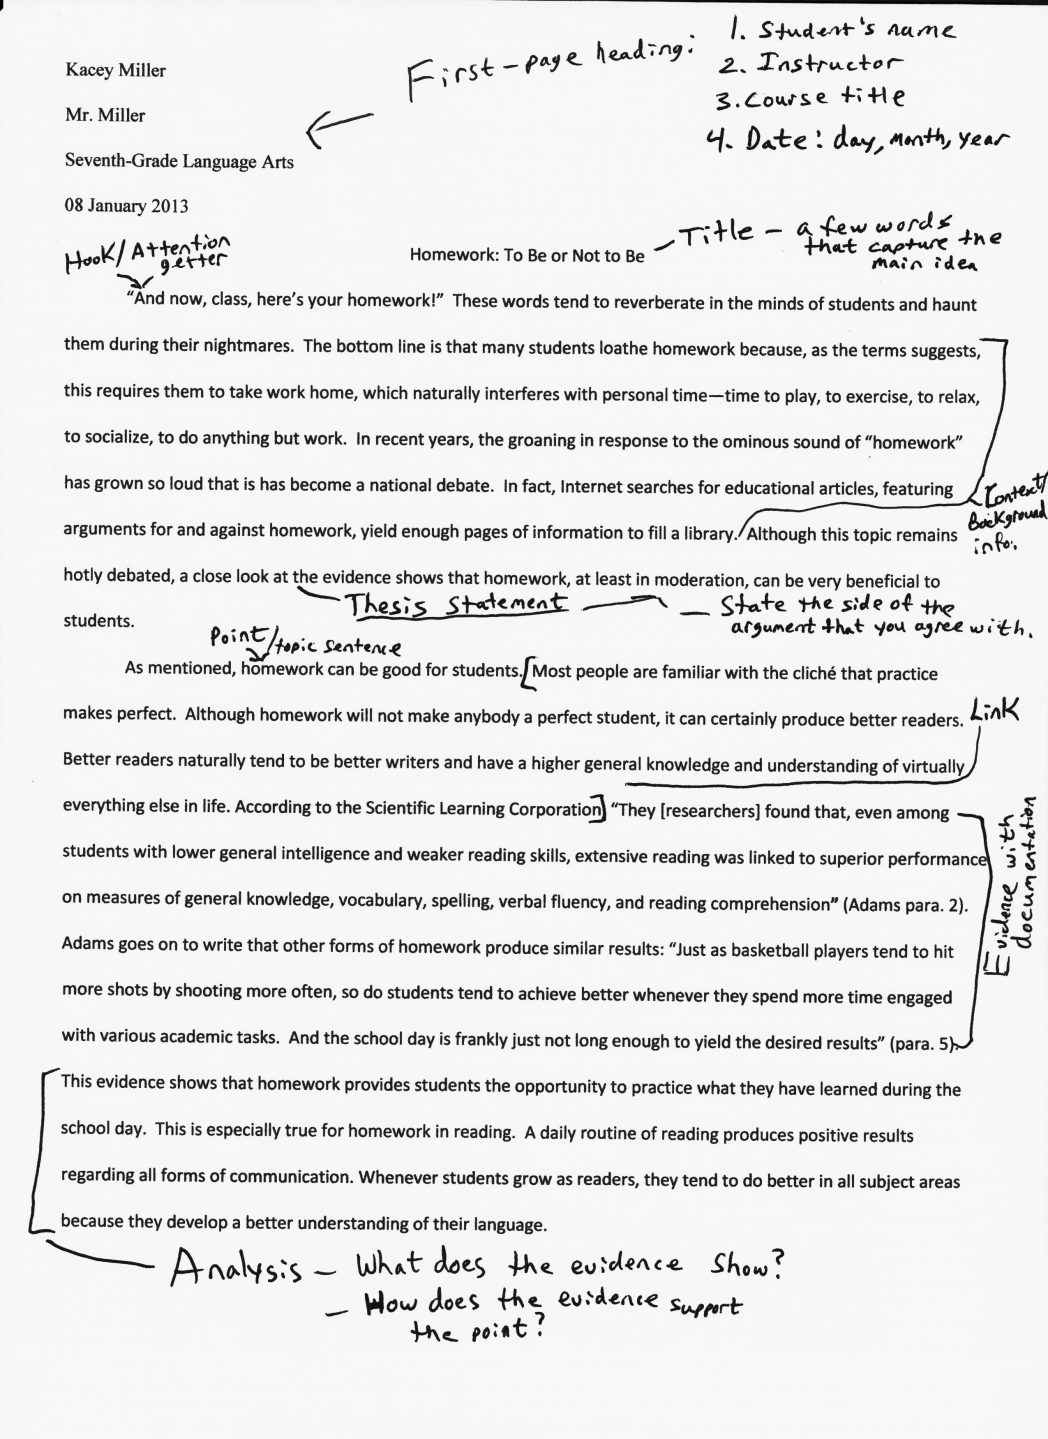 011 Word Essay Example Words Page Funny College Free Unforgettable 700 How Many Pages On Save Fuel Format Full